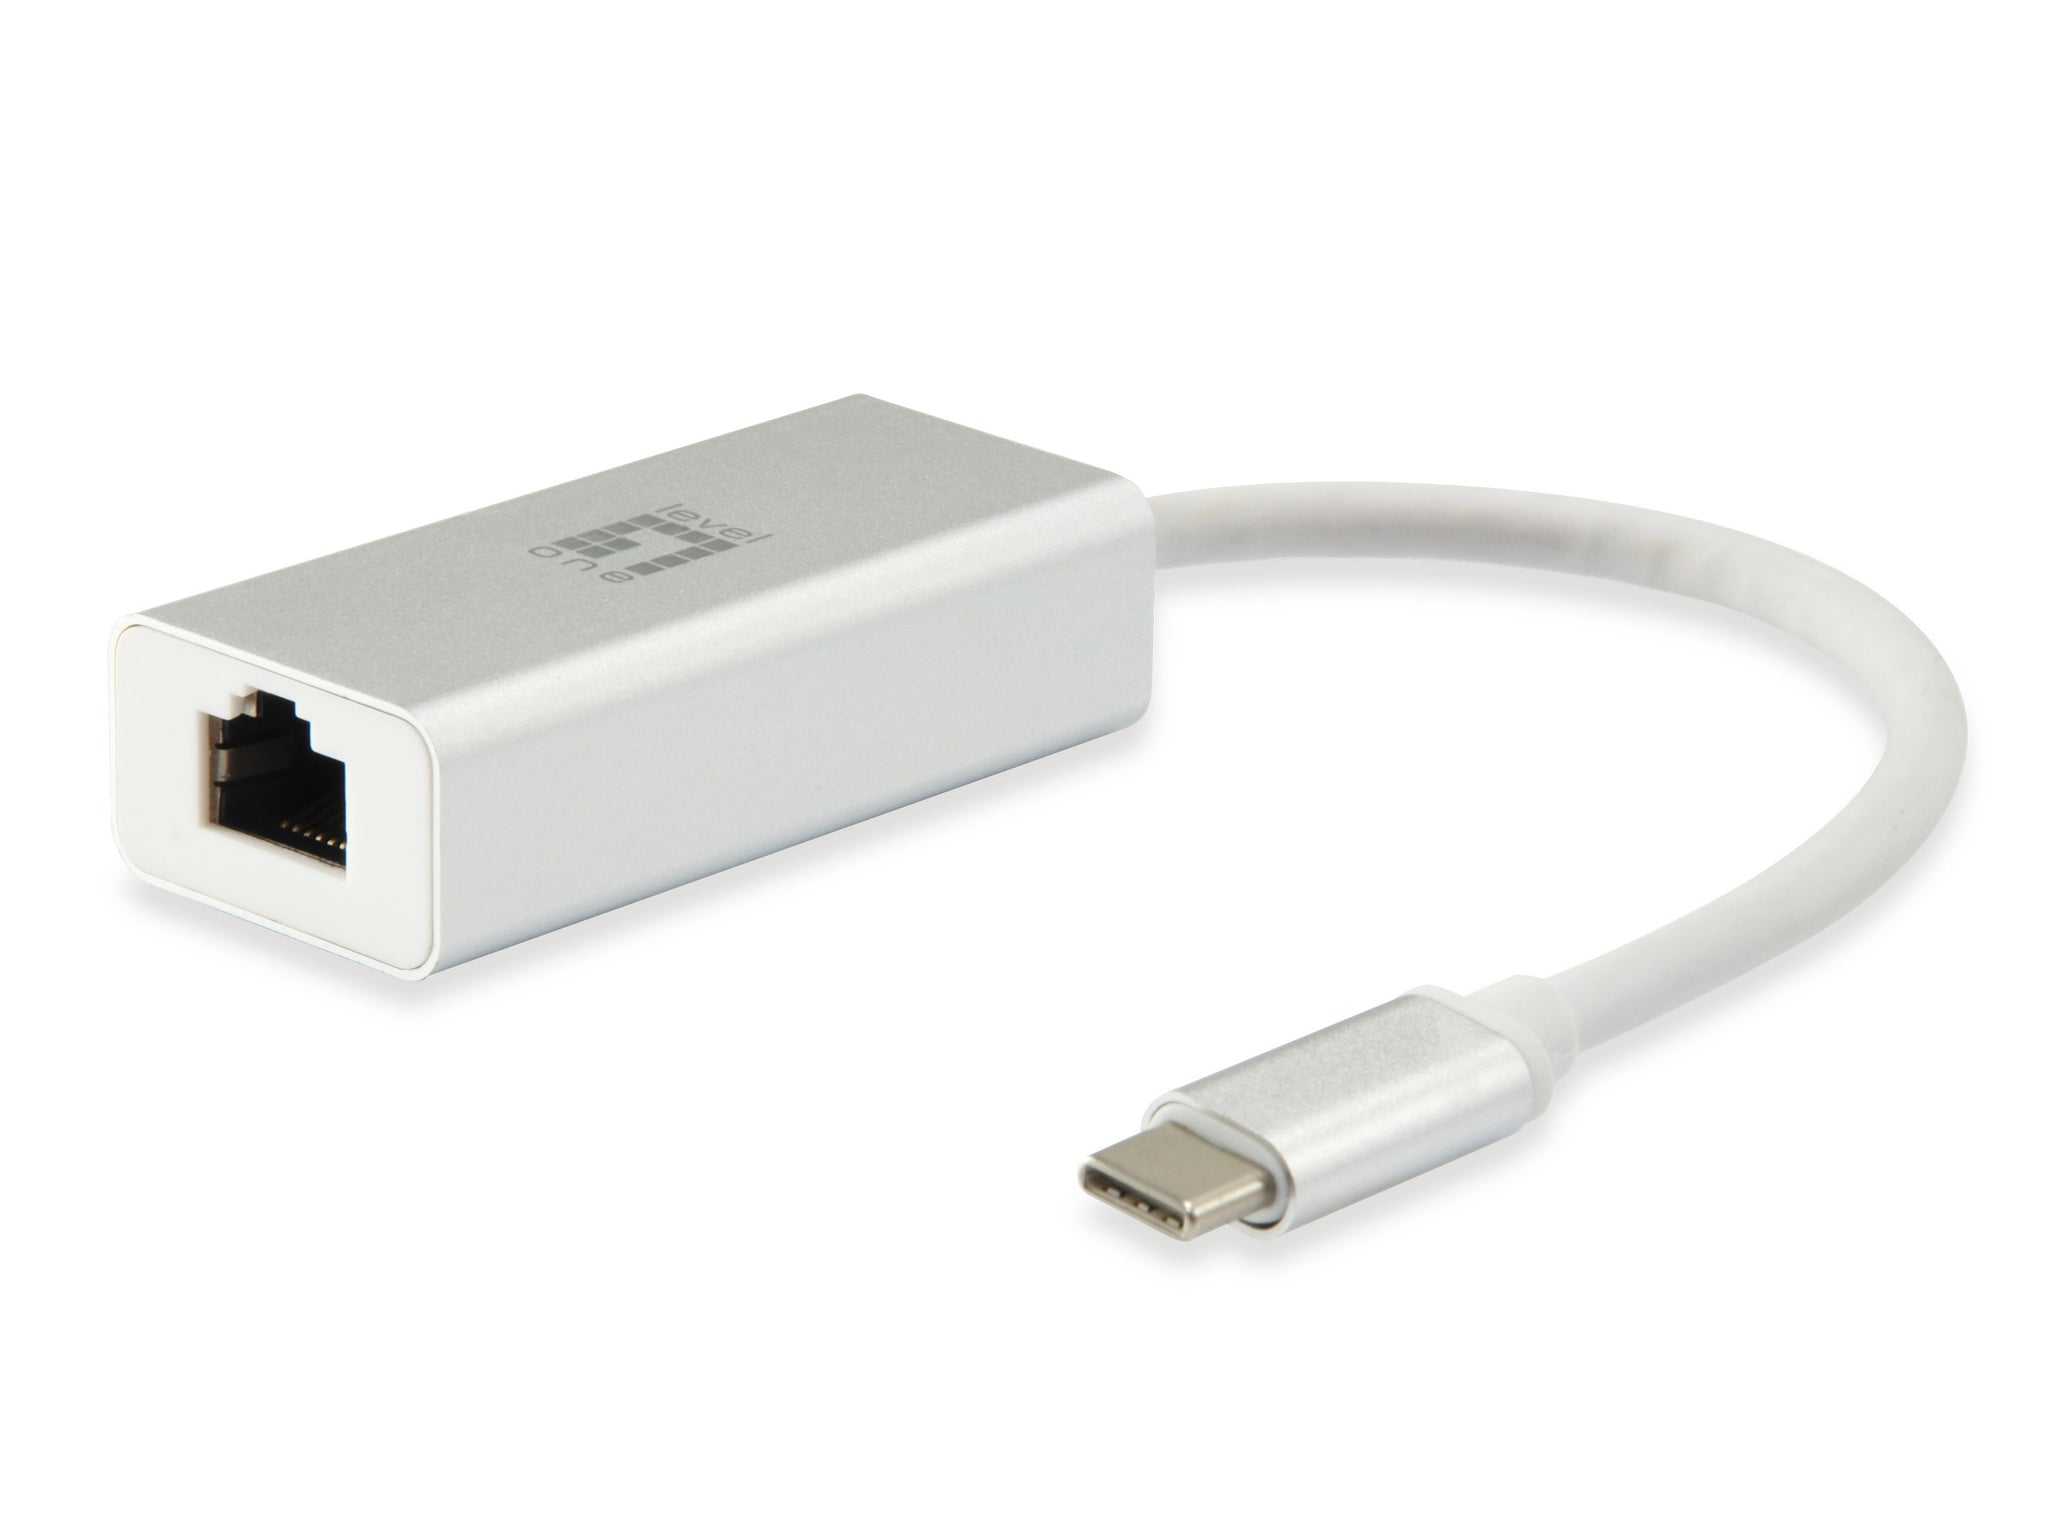 USB-0402 Gigabit USB-C Network Adapter